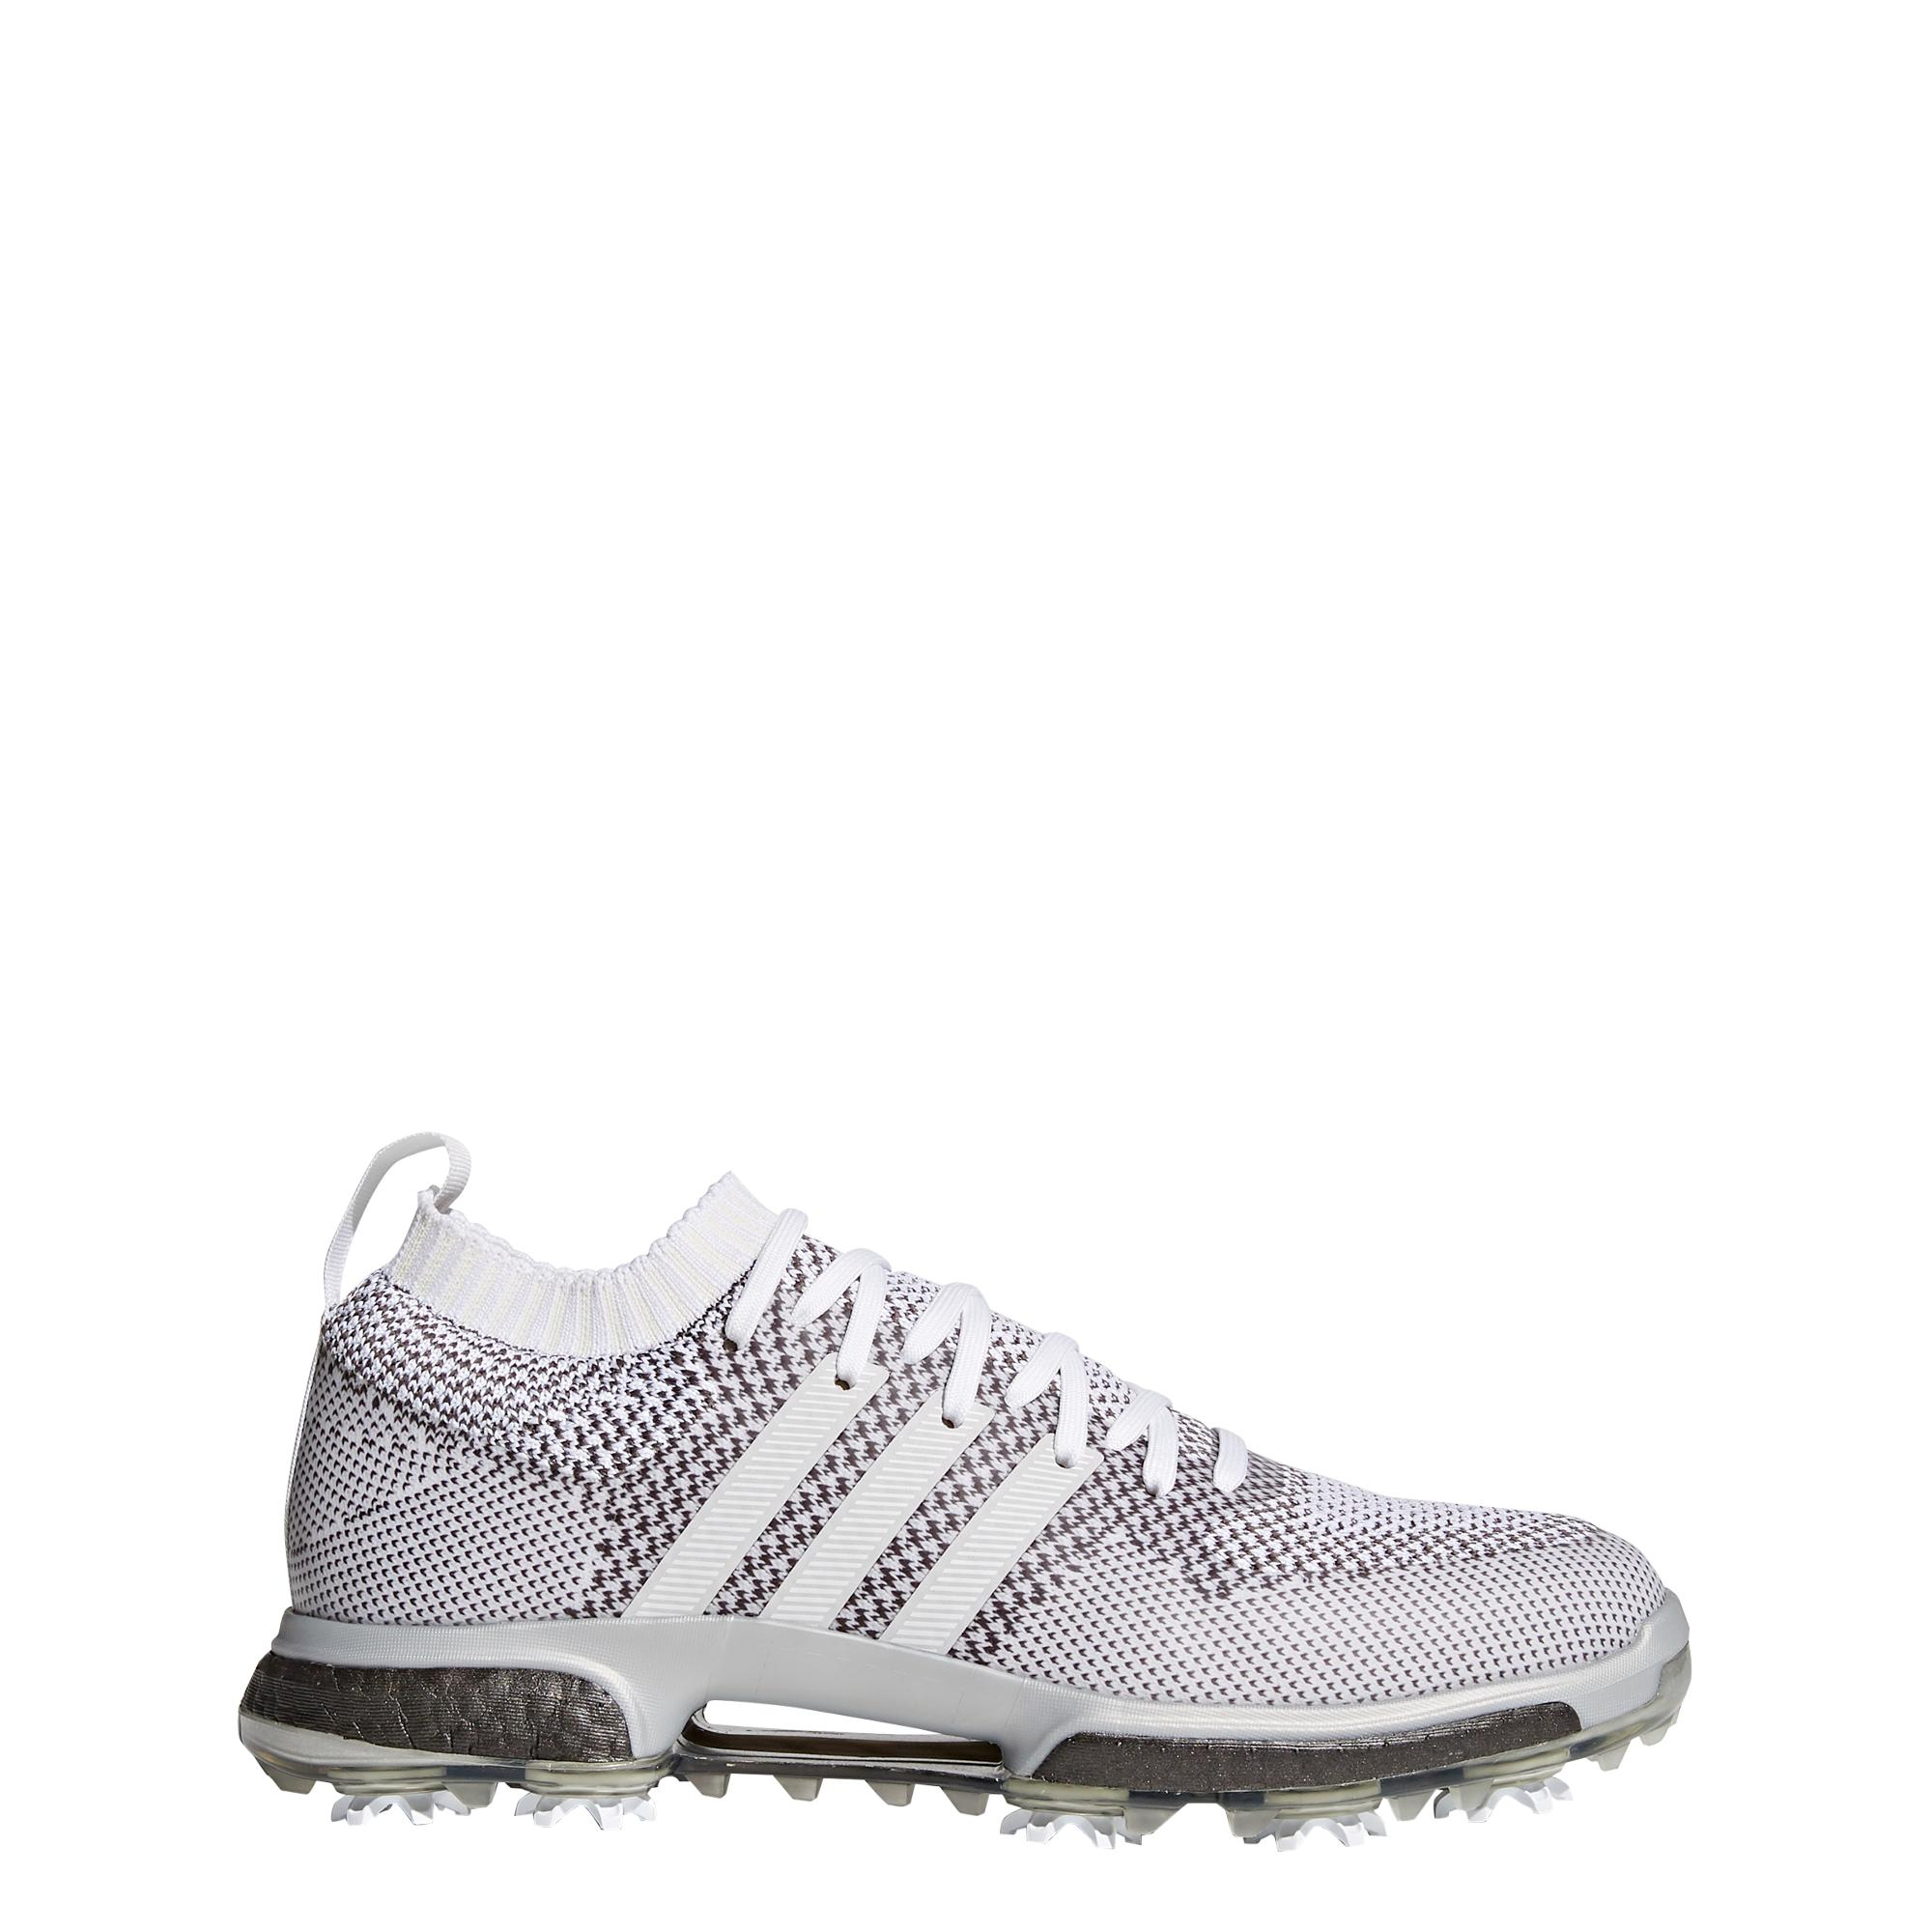 Men's Coloured Tour360 Knit Spiked Golf Shoe - White